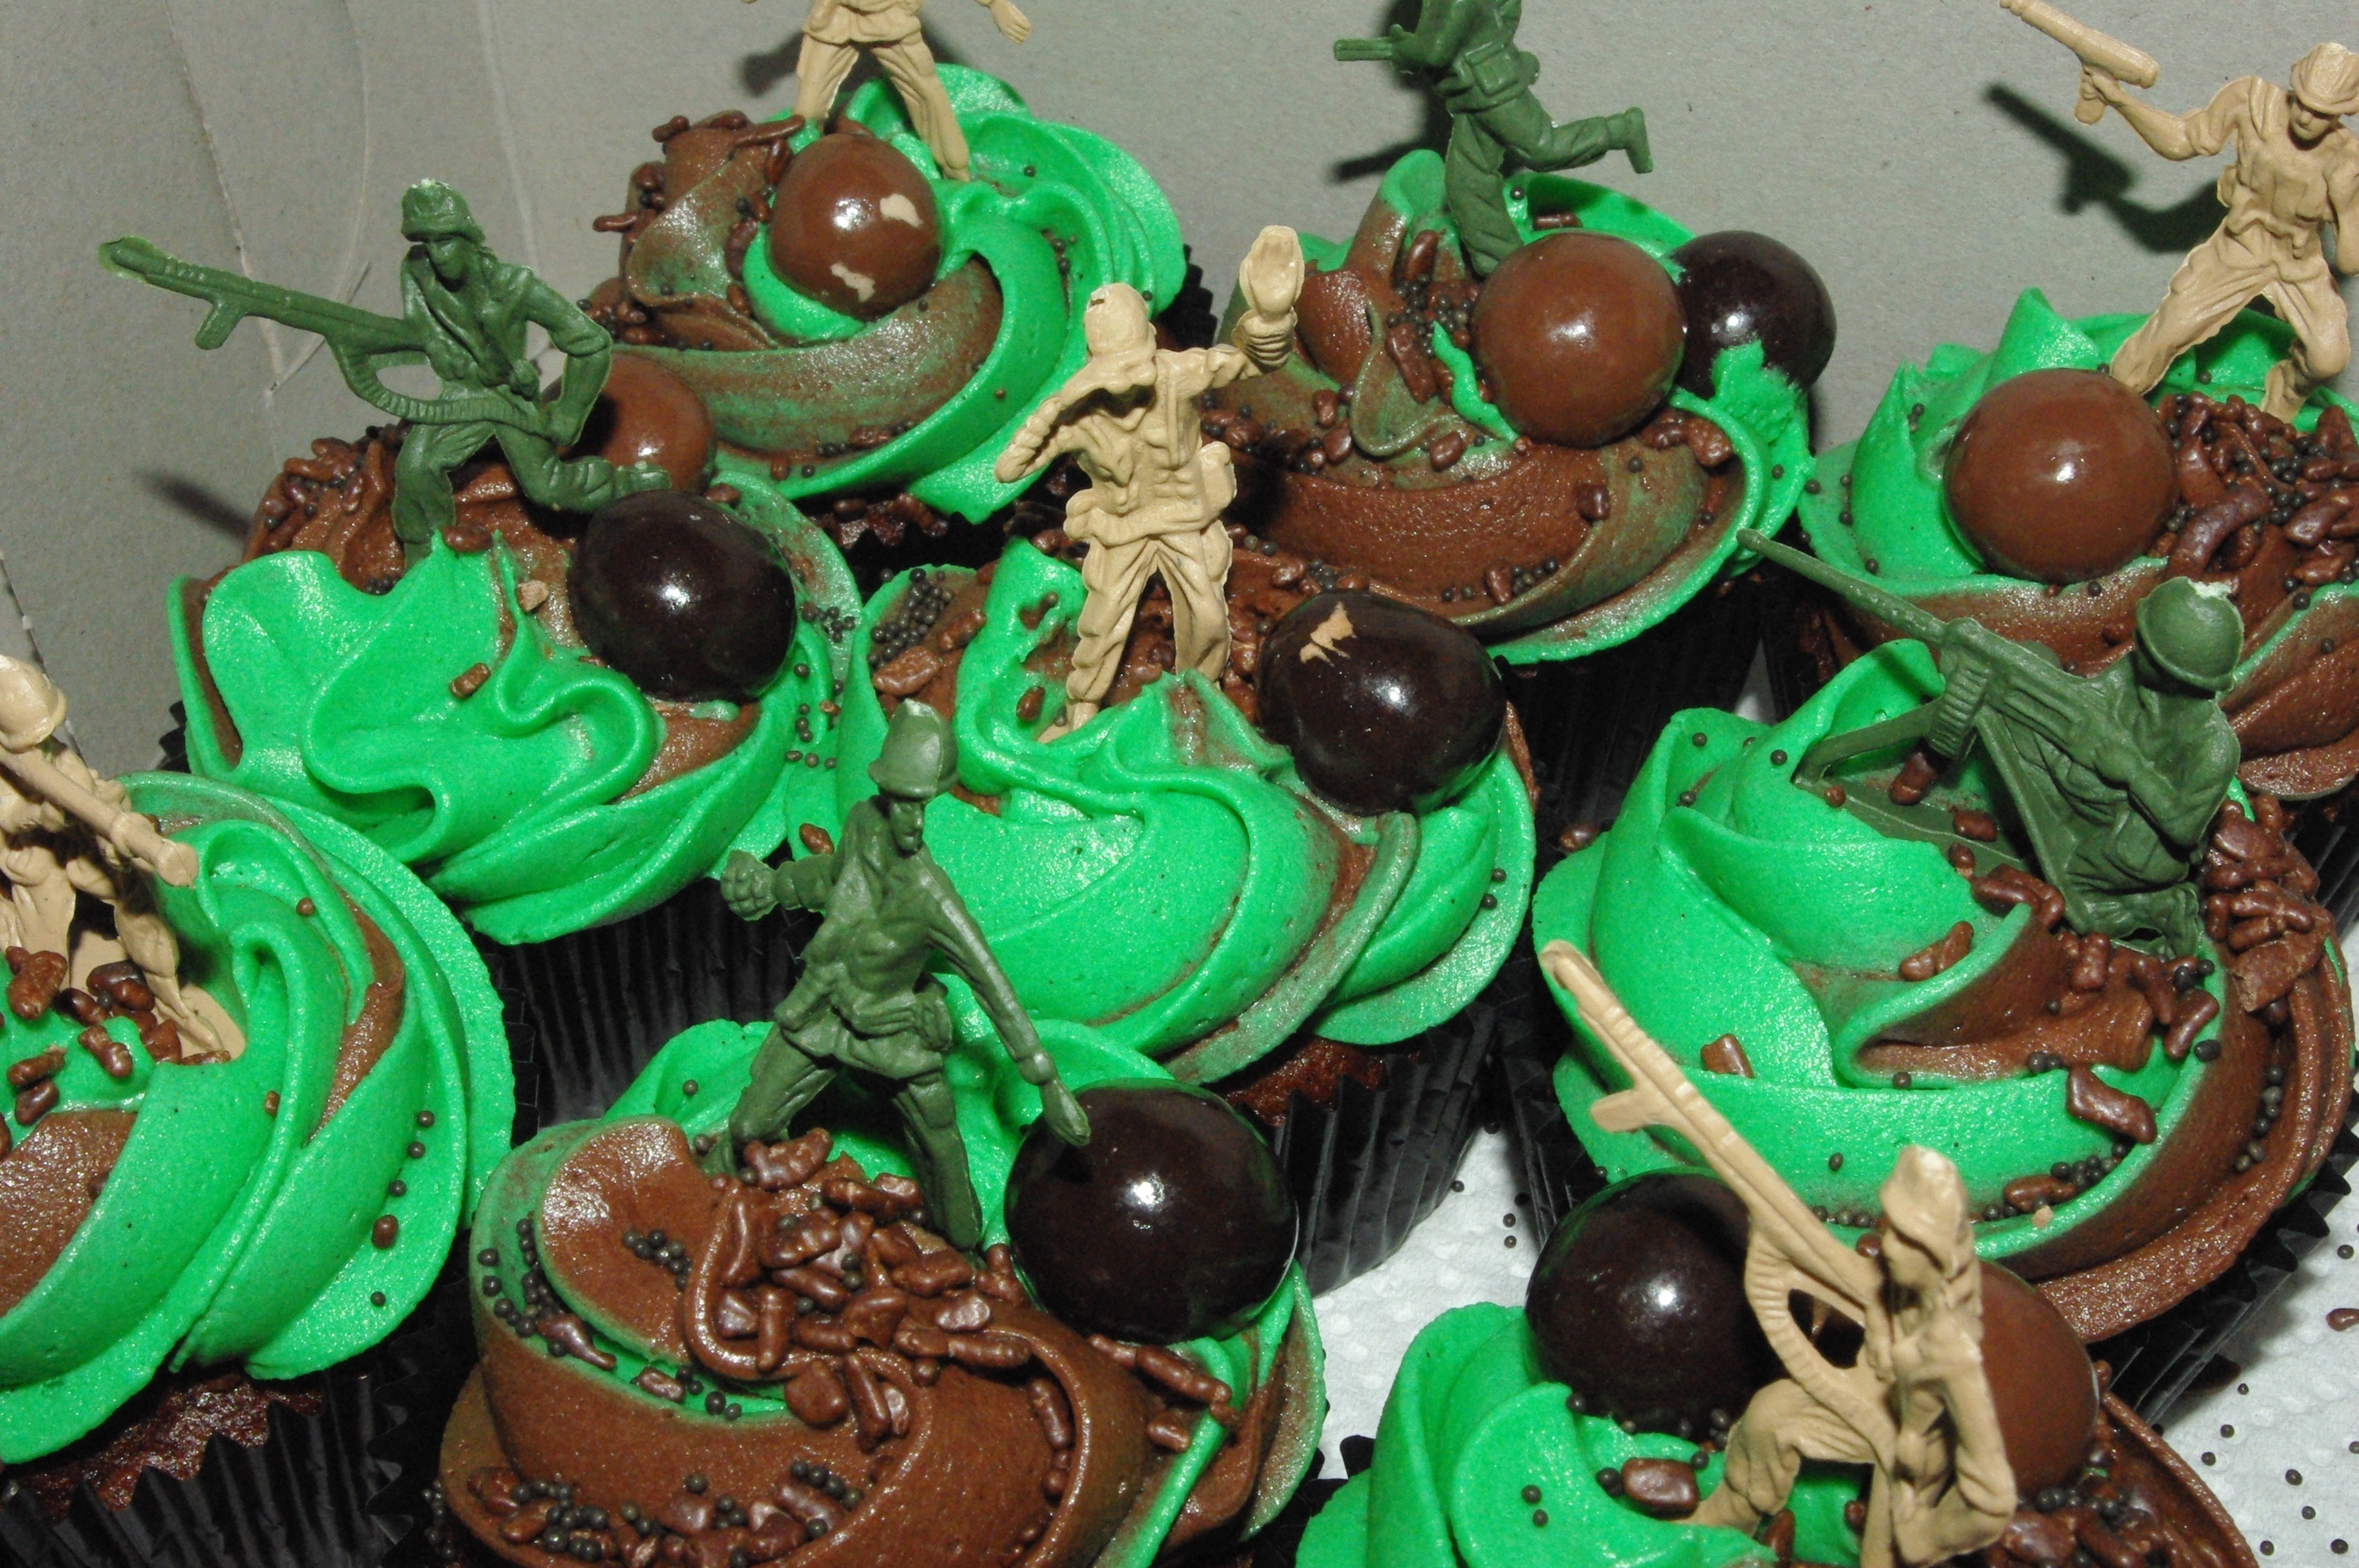 5 Photos of Army Themed Cake Cupcakes